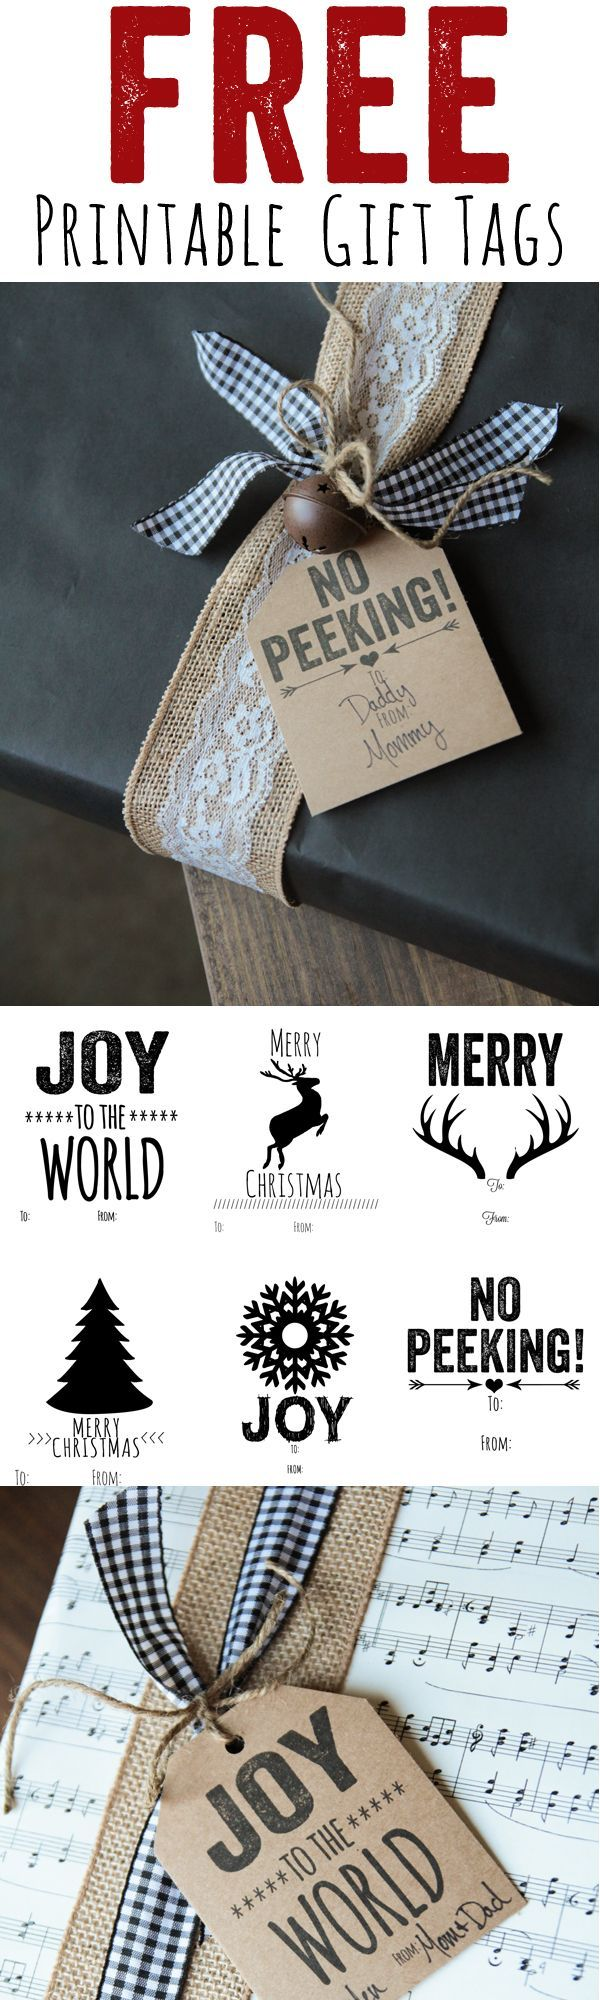 Free Printable Christmas Gift Tags from @Shanti Leeuwen Yell-2-Chic.com